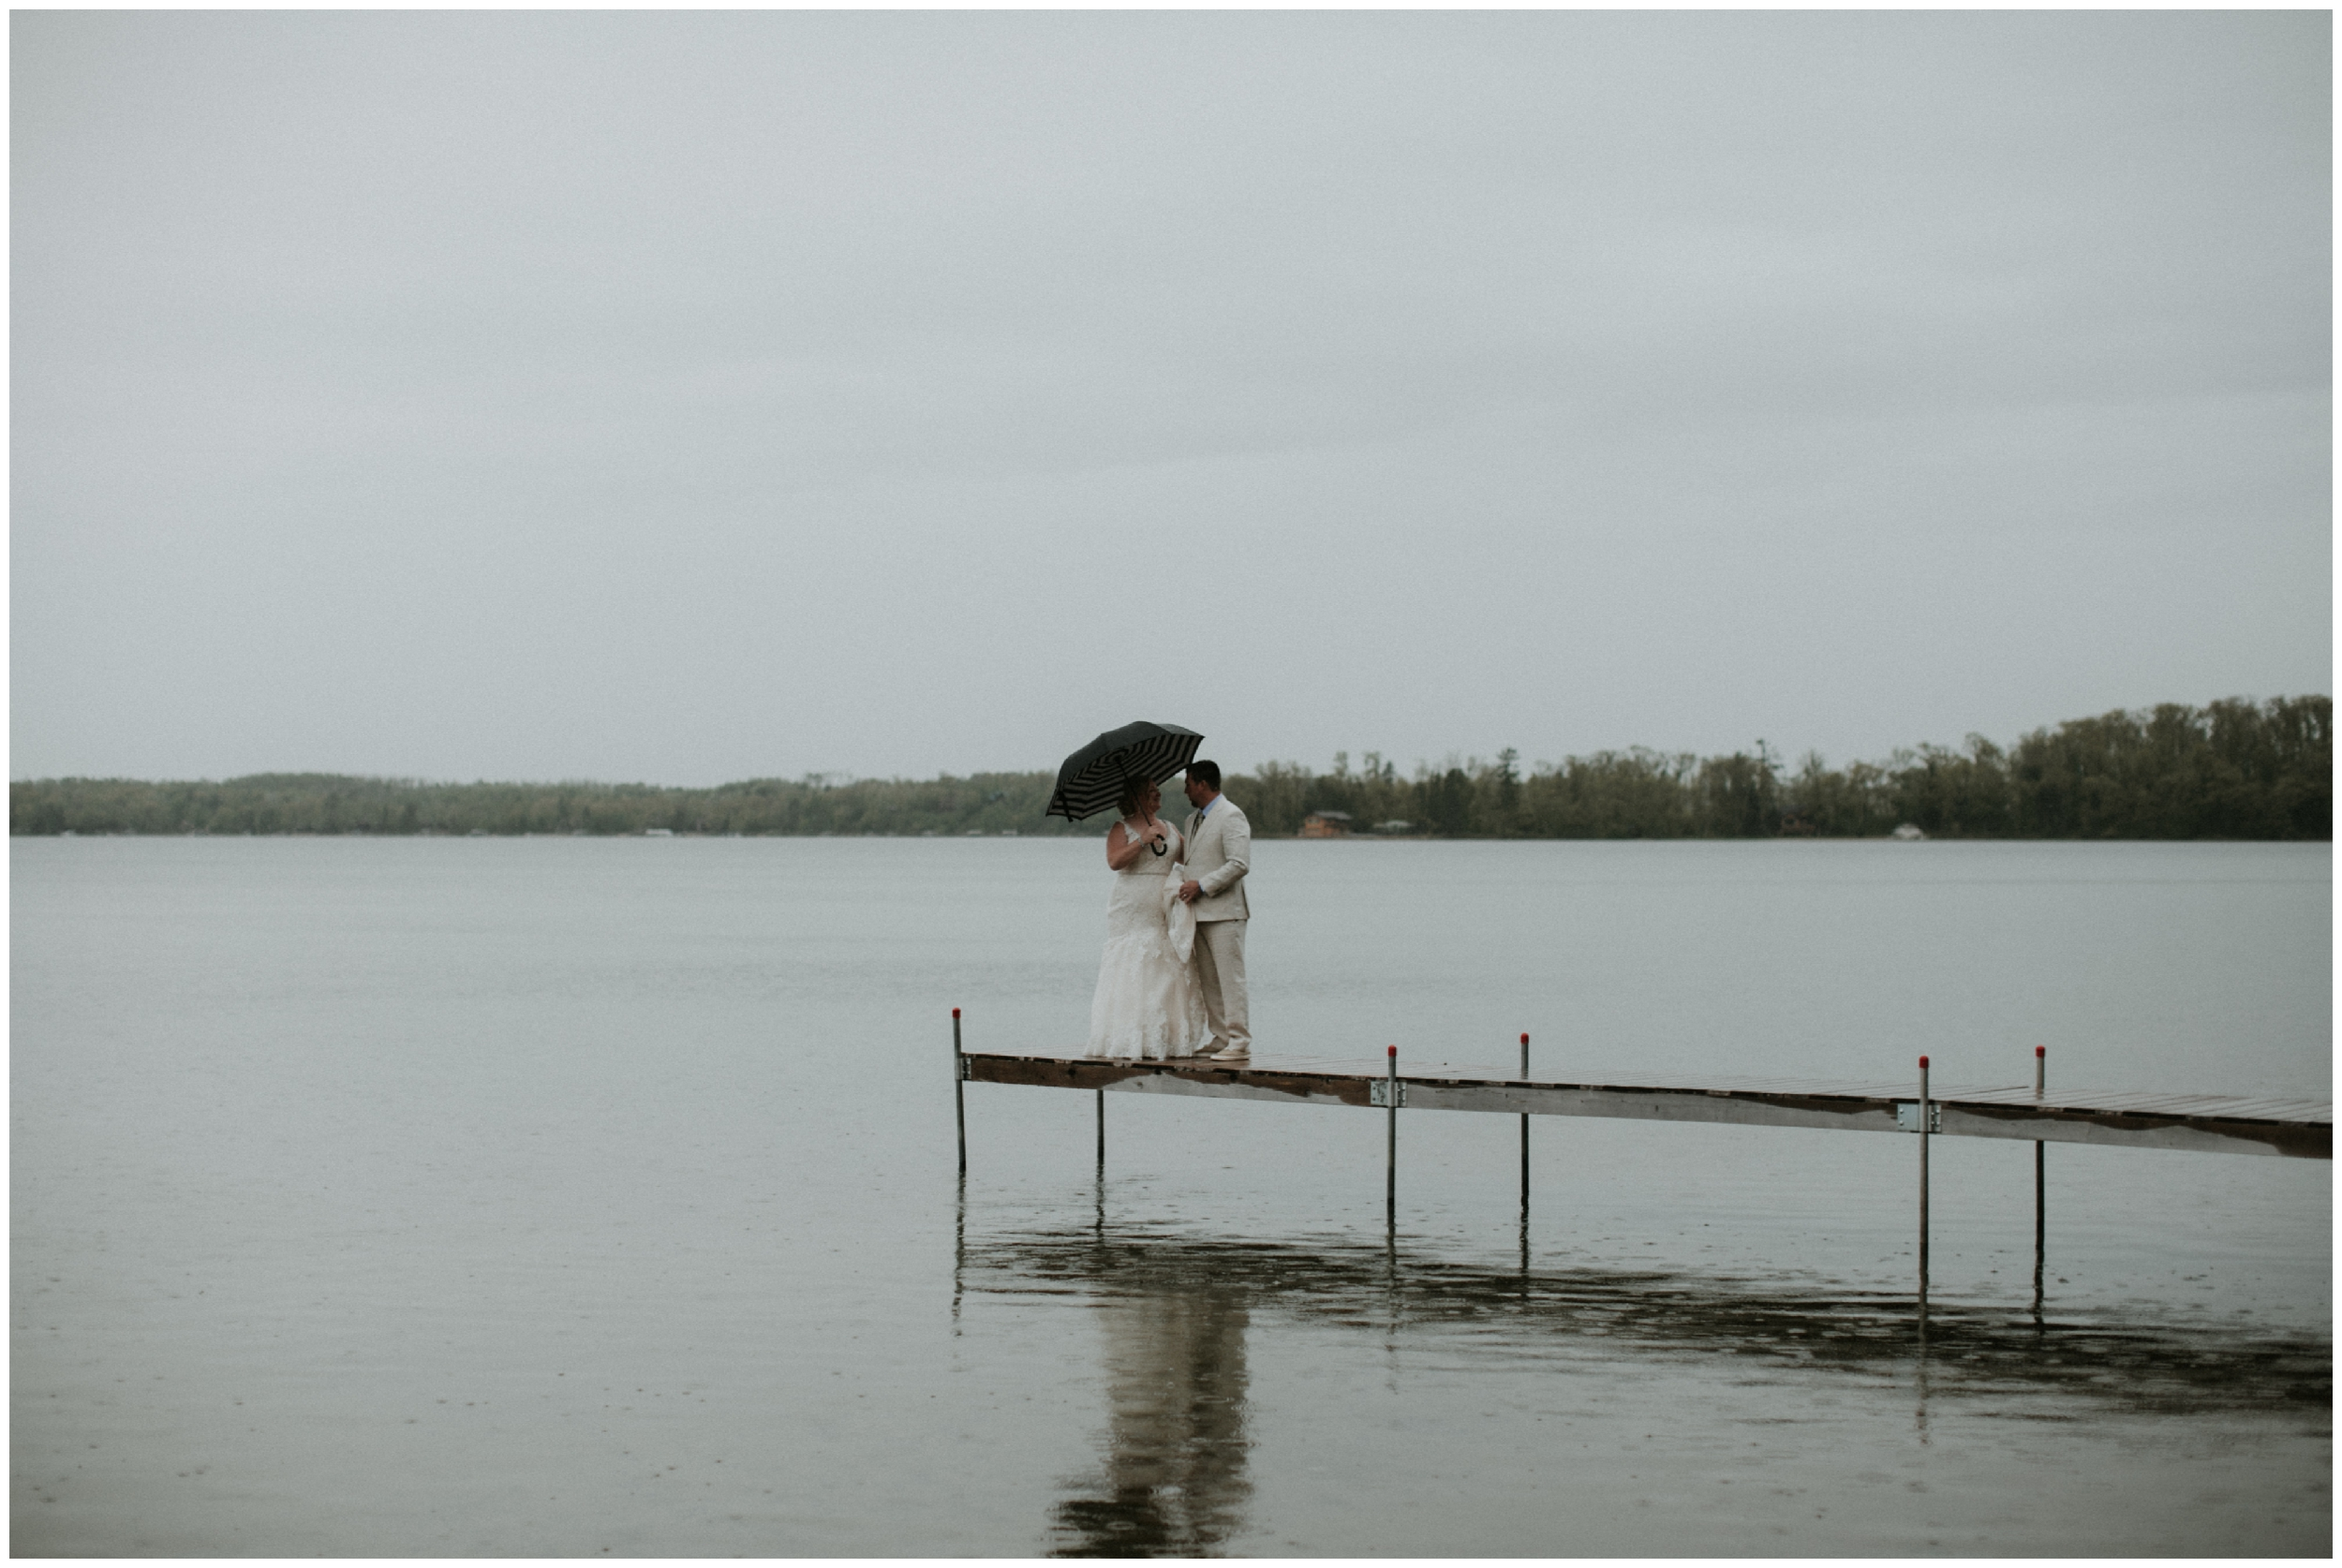 Rainy outdoor spring wedding at Madden's Resort on Gull Lake